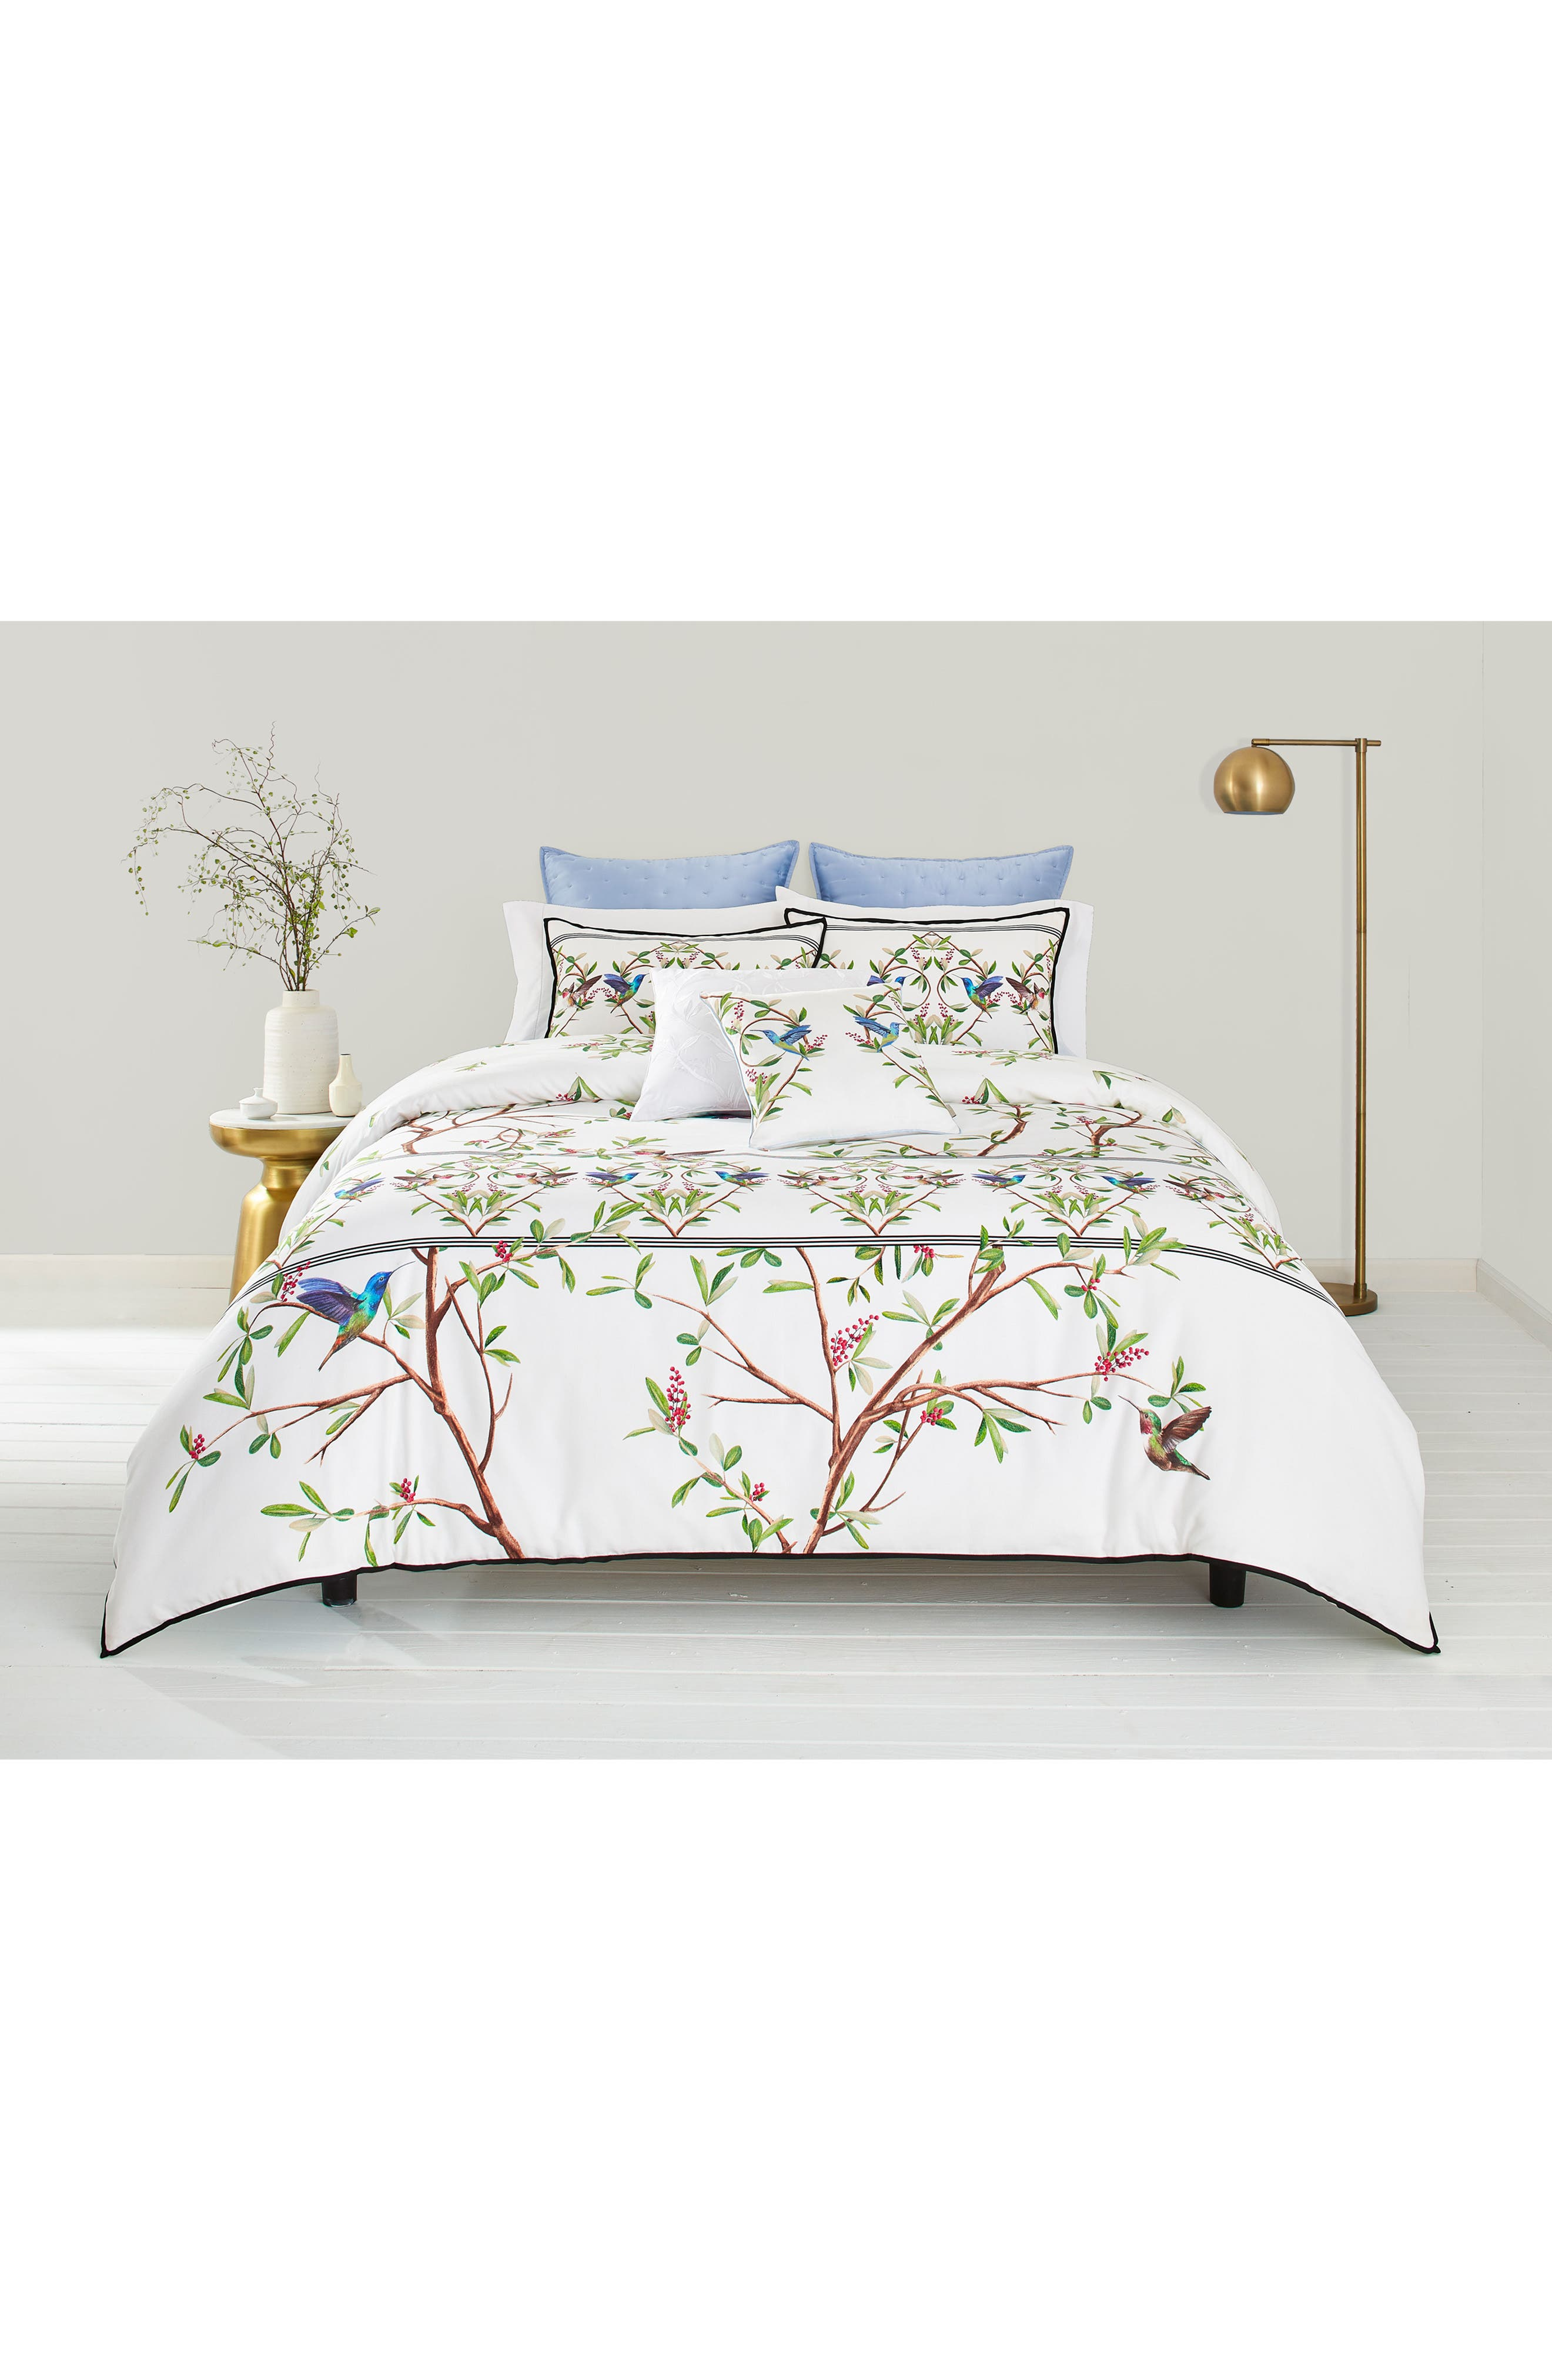 TED BAKER LONDON, Highgrove Comforter & Sham Set, Main thumbnail 1, color, WHITE/ MULTI